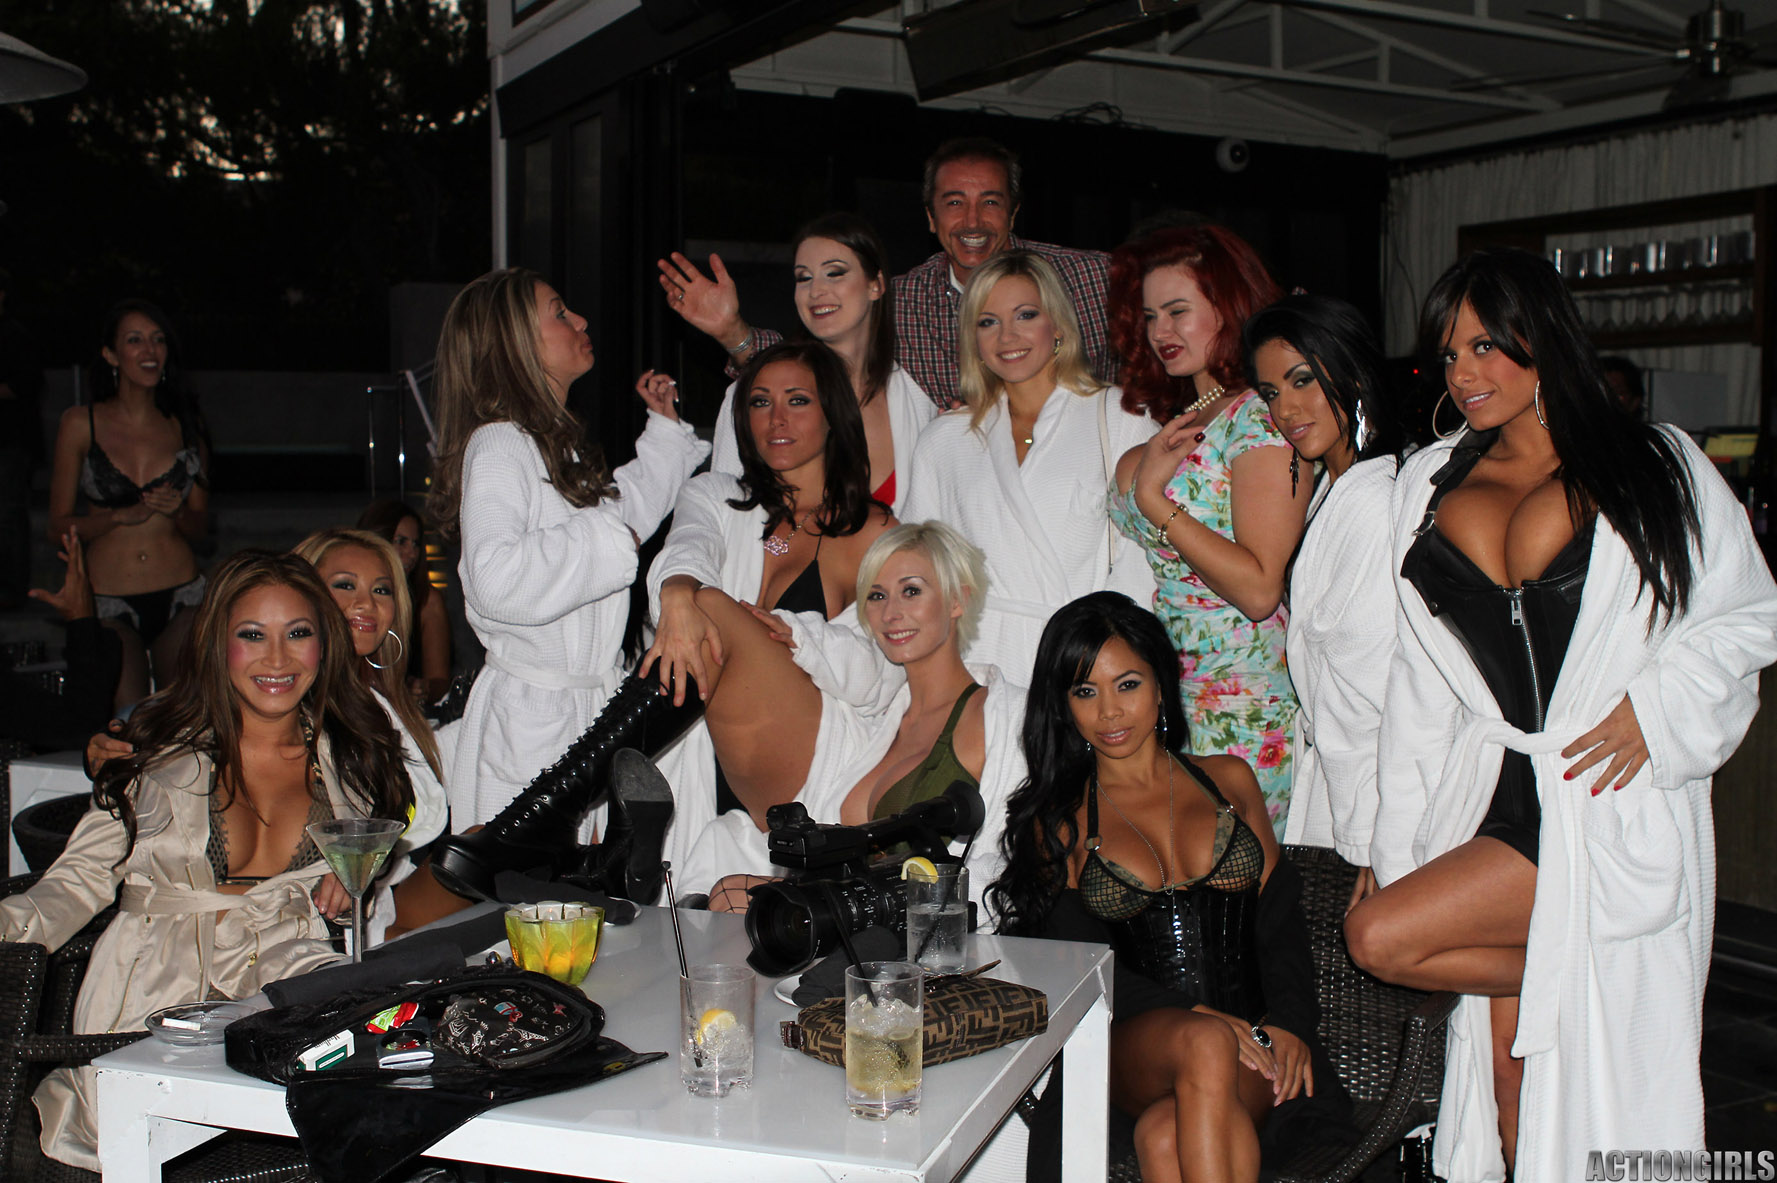 http://ww4.actiongirls.com/gallery157/Party-to-Playboy-pics-ac/actiongirlspartytoplayboymansion063.jpg